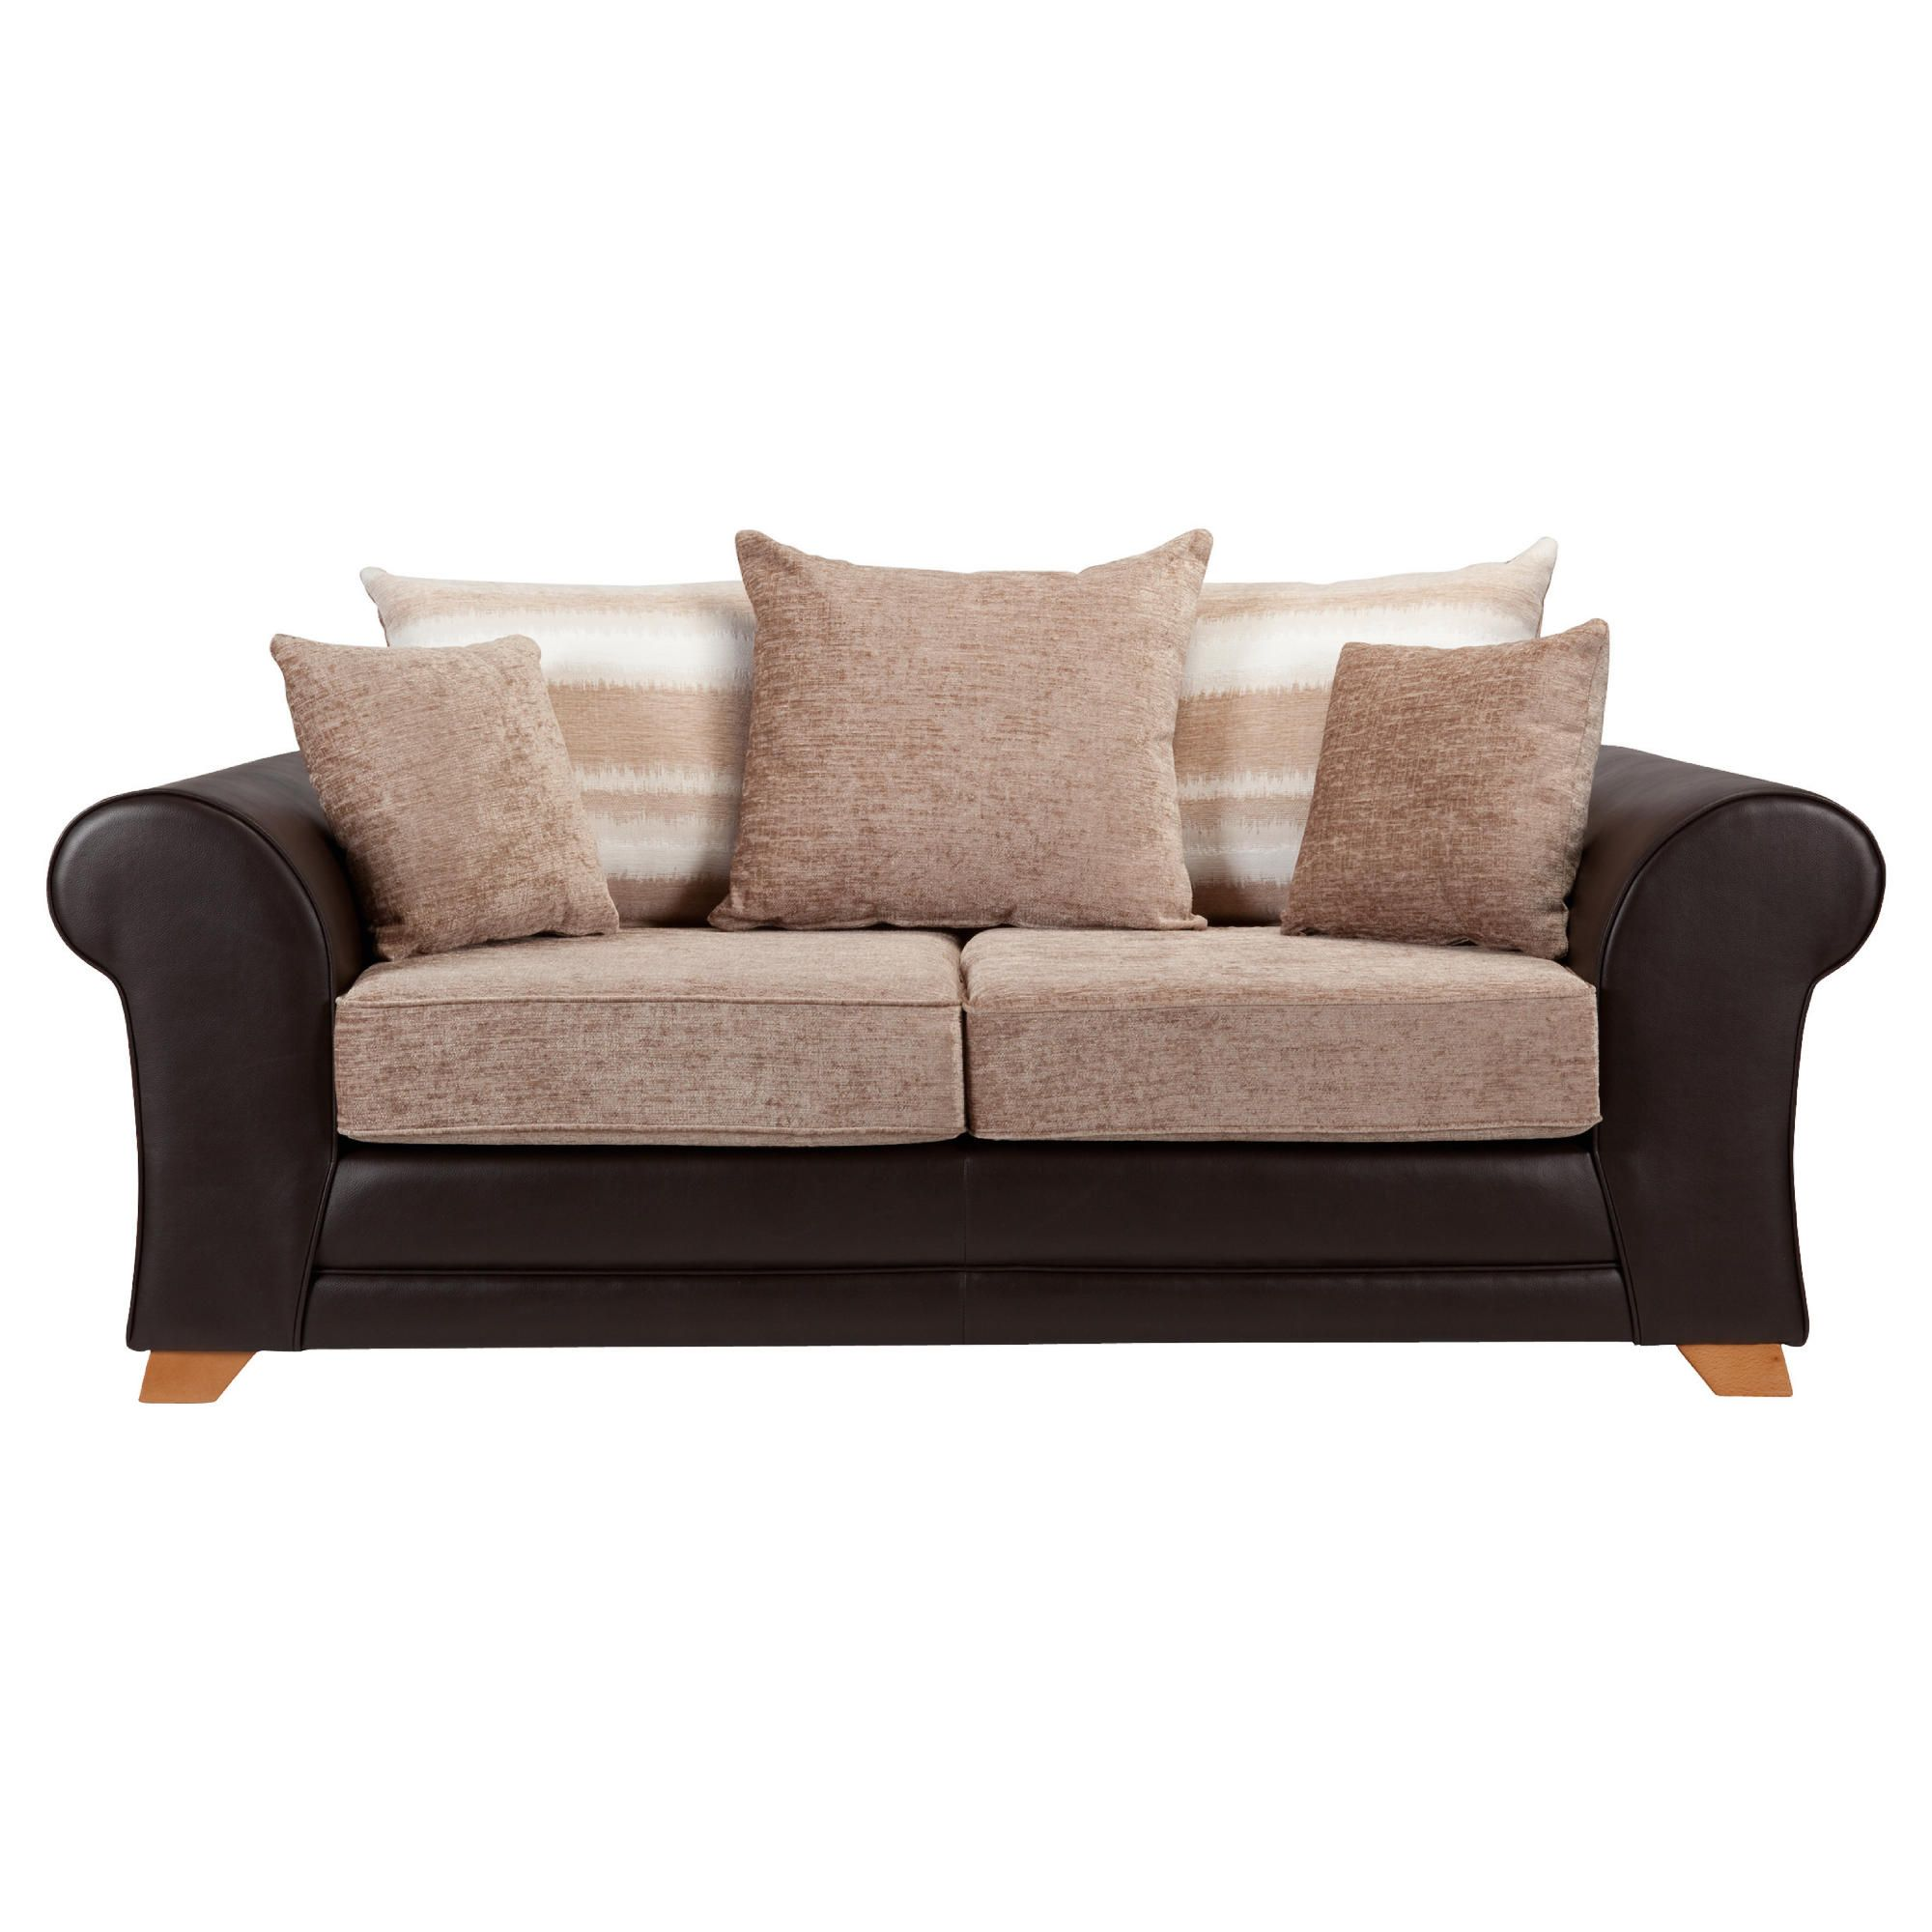 Home and garden gt Furniture Toronto Fabric Sofabed Mink  : 692 8017PITPS1719253wid2000amphei2000 from misterx-price.com size 2000 x 2000 jpeg 211kB